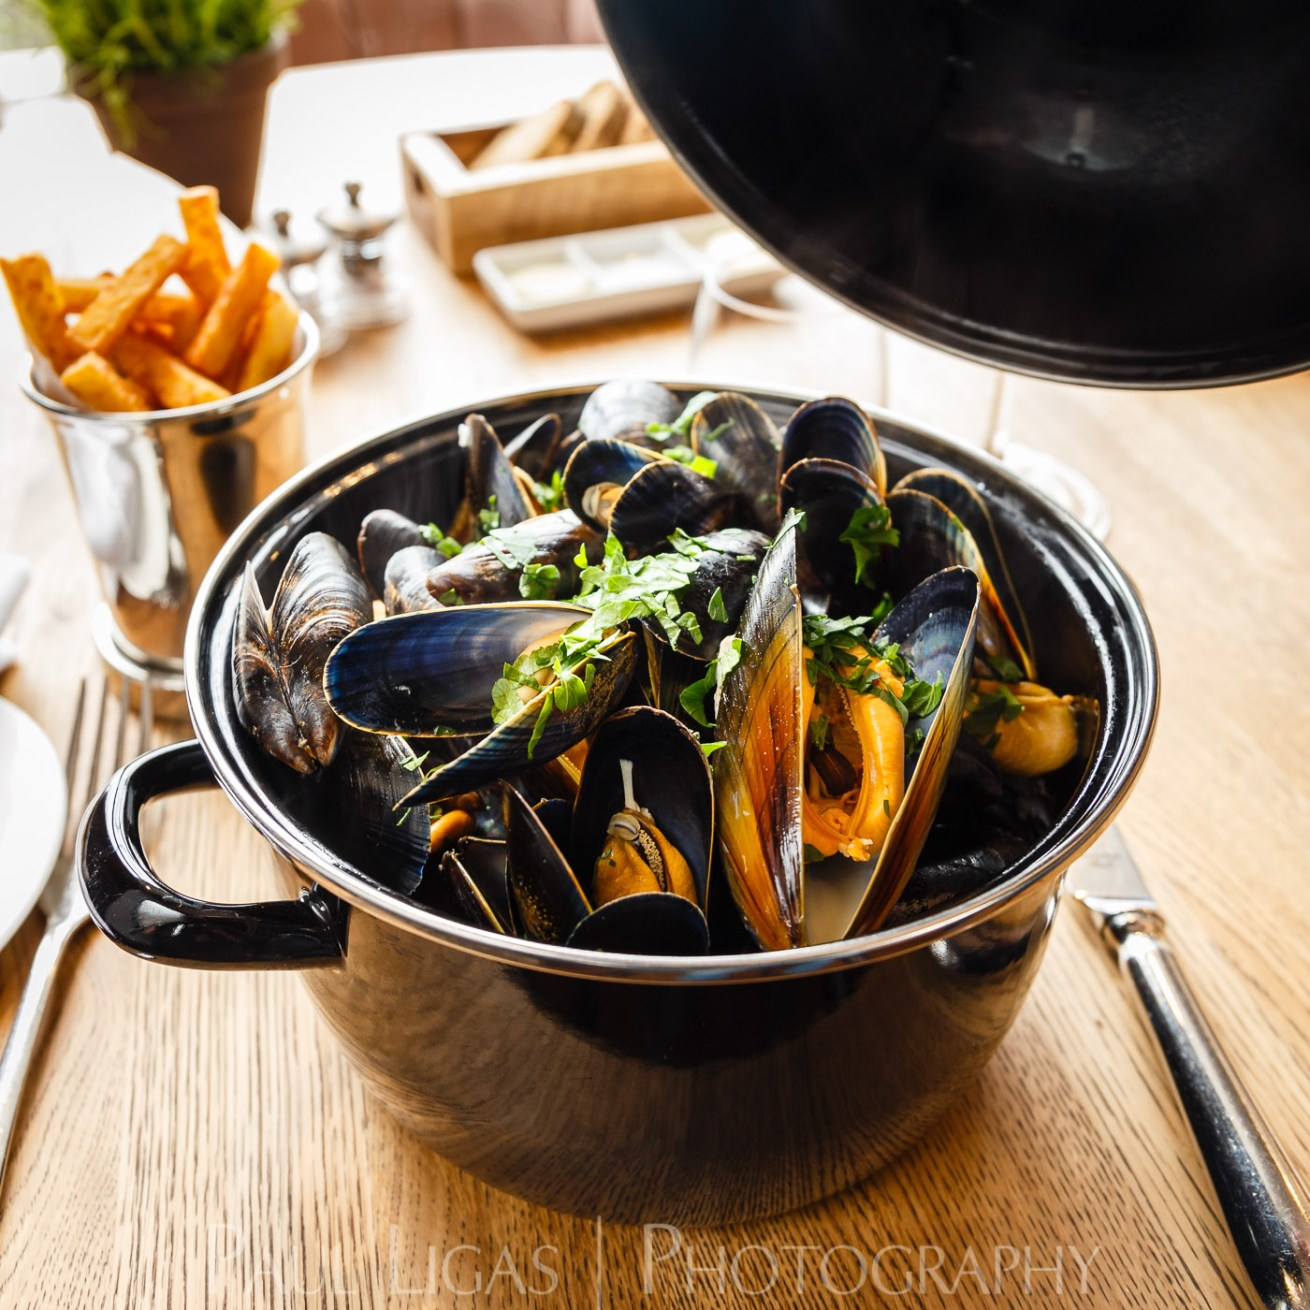 The Cottage In The Wood, Malvern, Worcestershire food photographer photography 9711